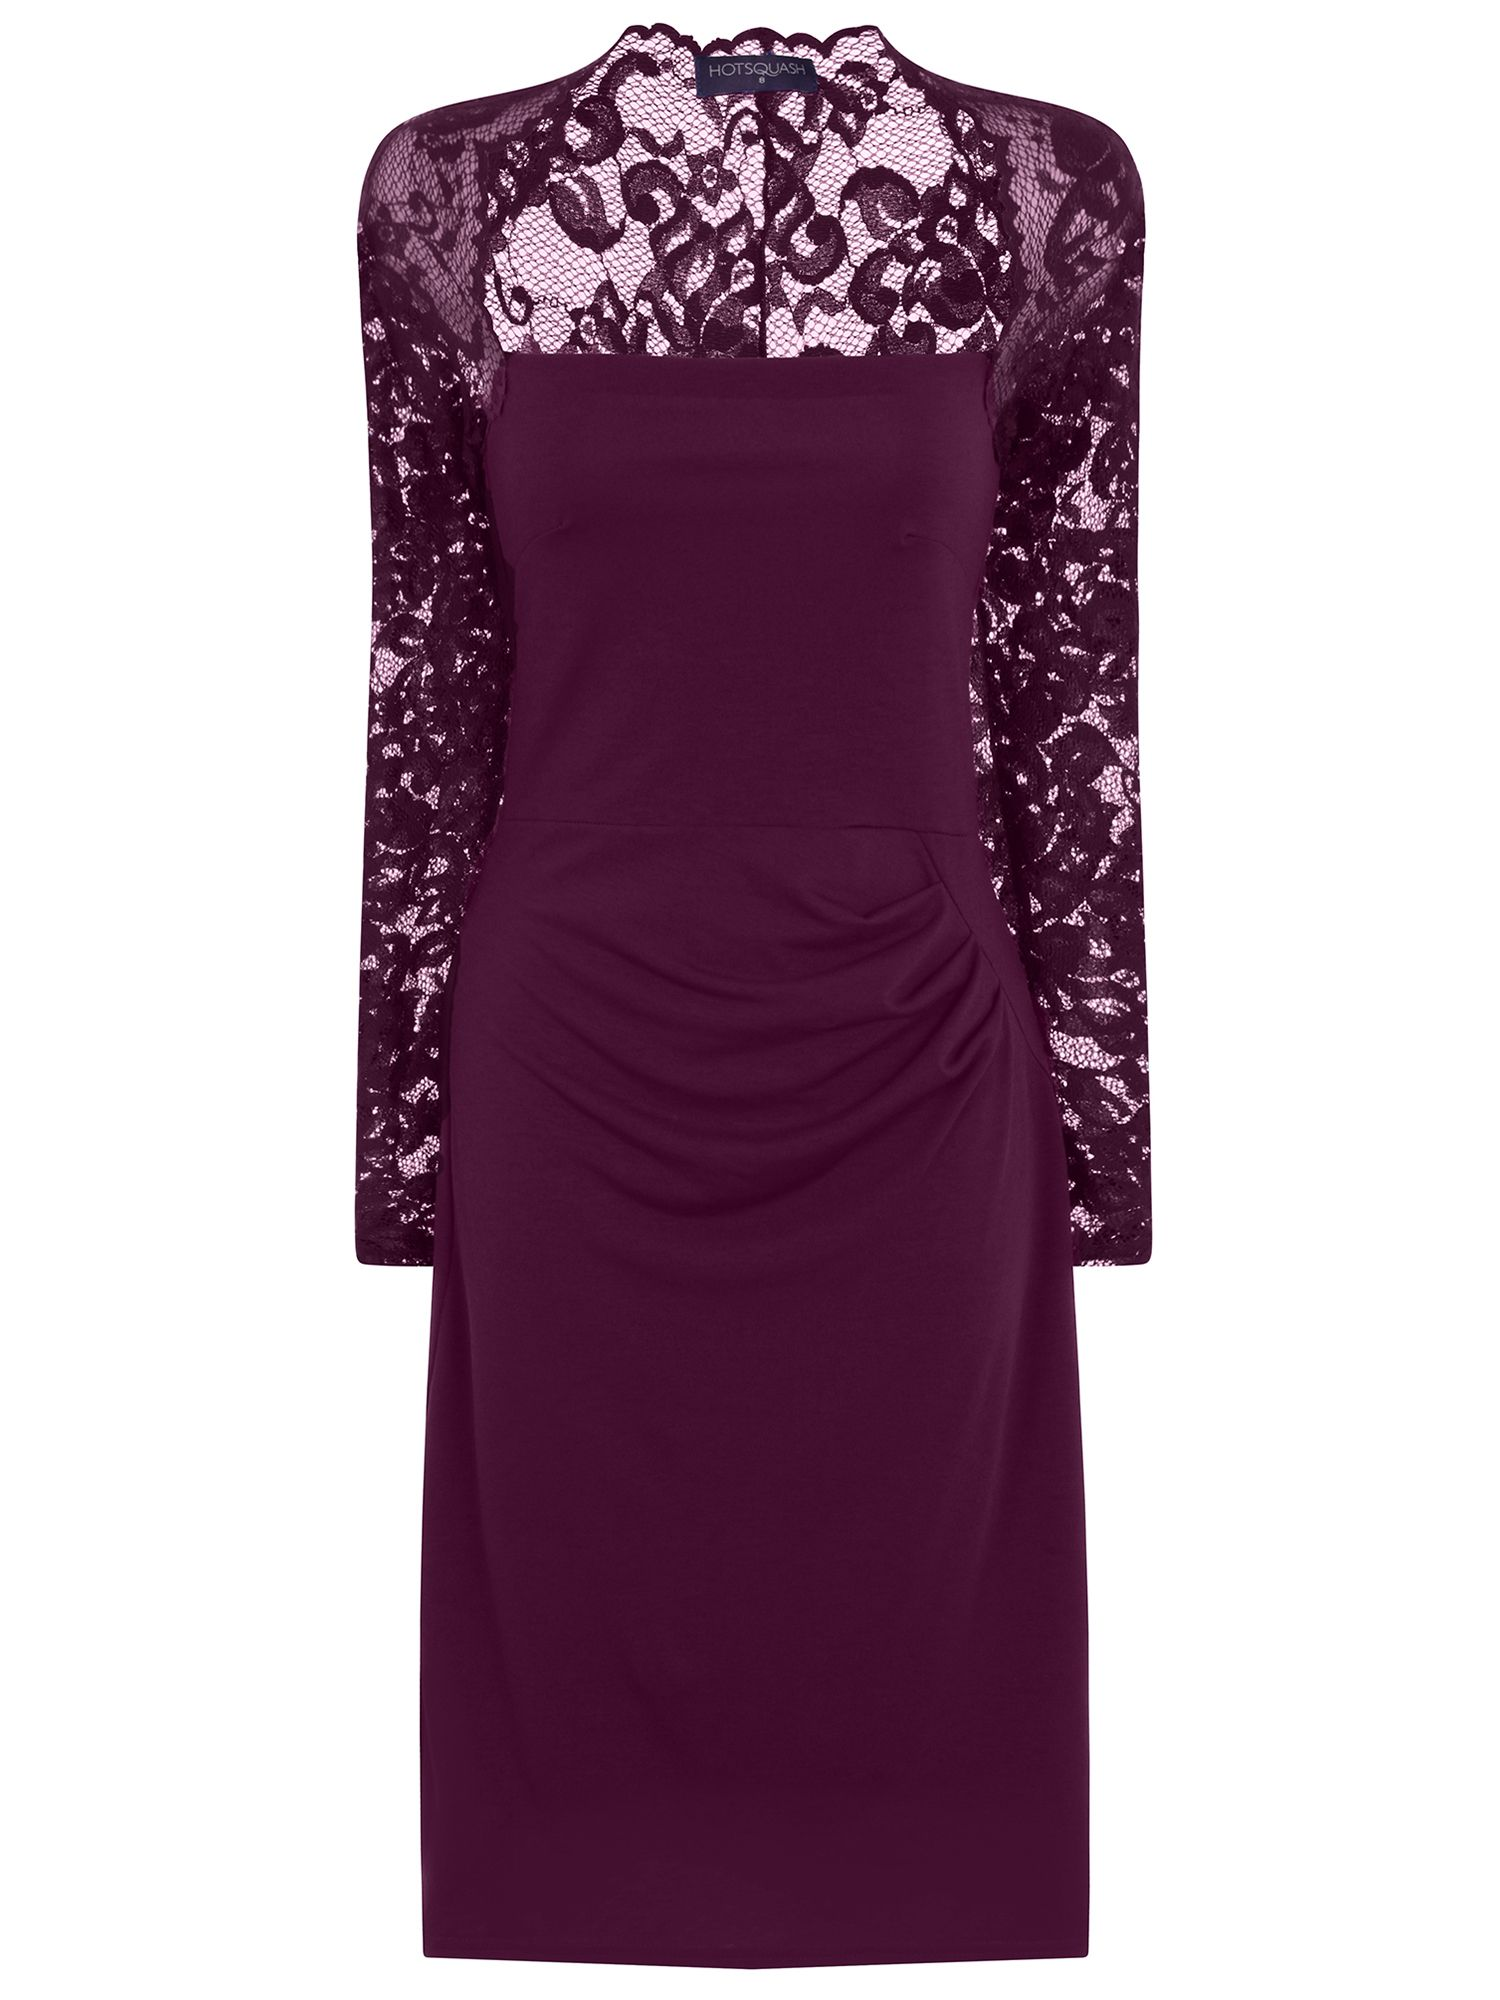 HotSquash Lace Sleeved Dress In Clever Fabric, Damson